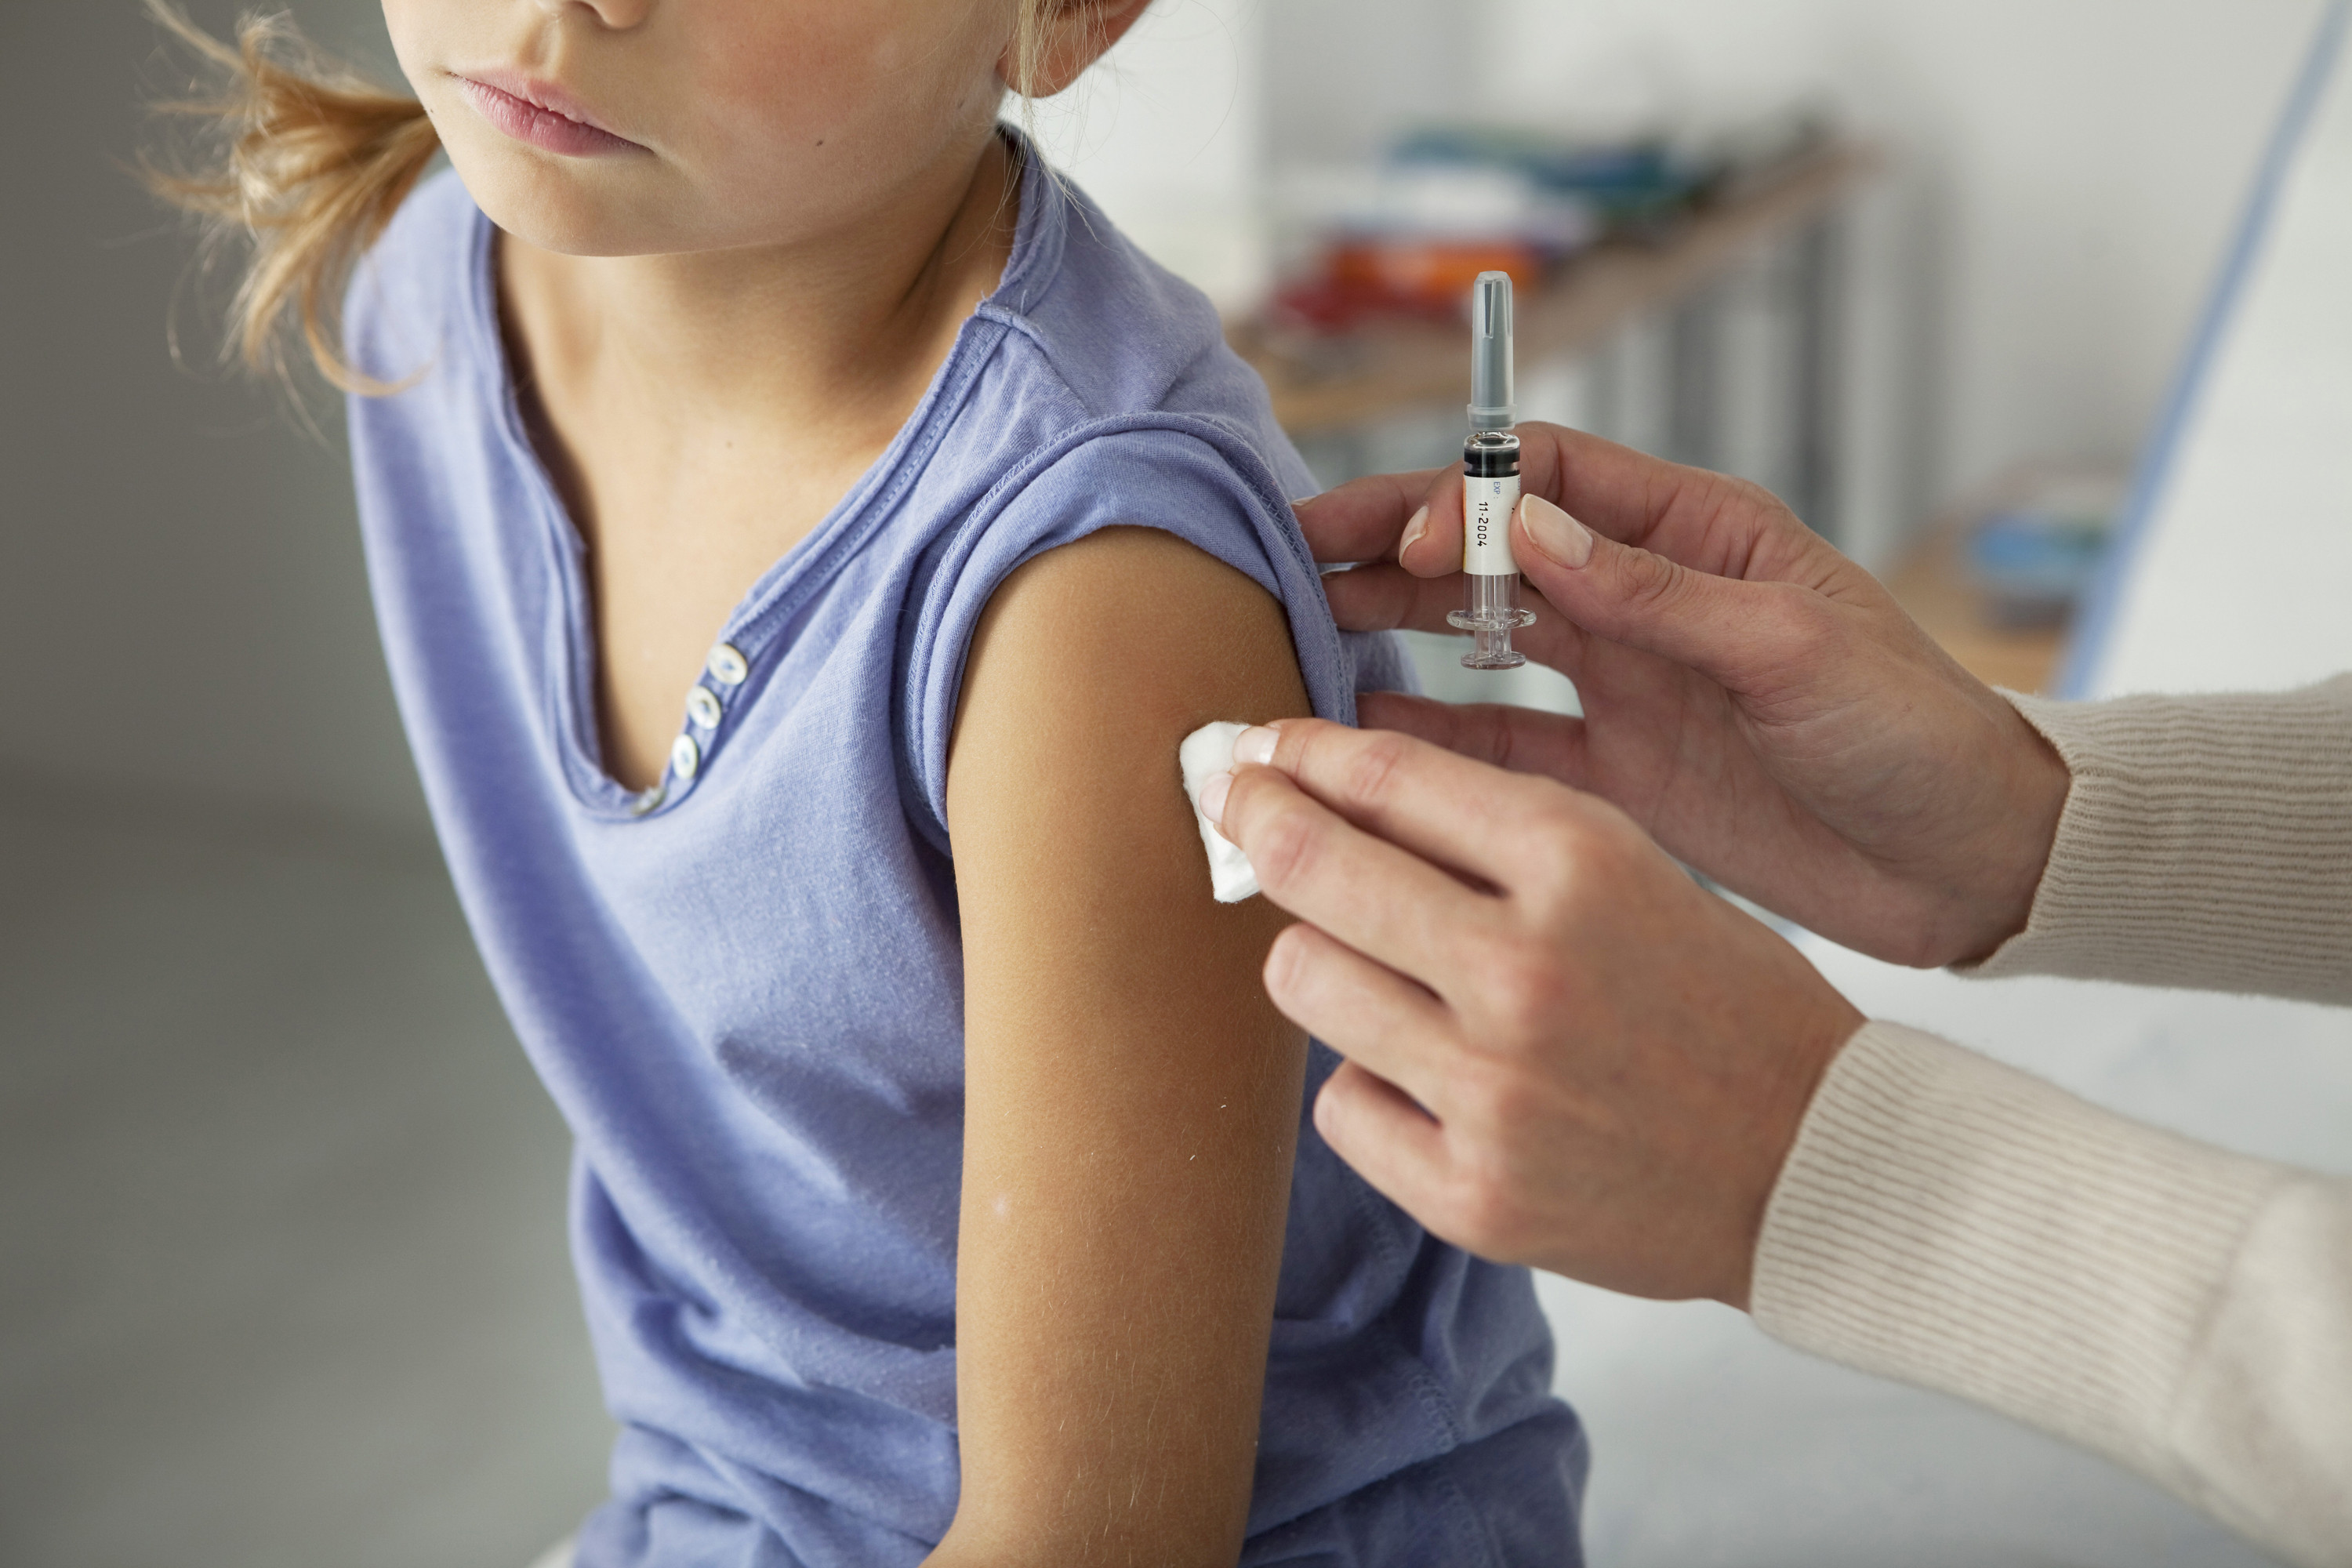 NYC Health Department Closes Two  Schools For Violating Measles Regulations